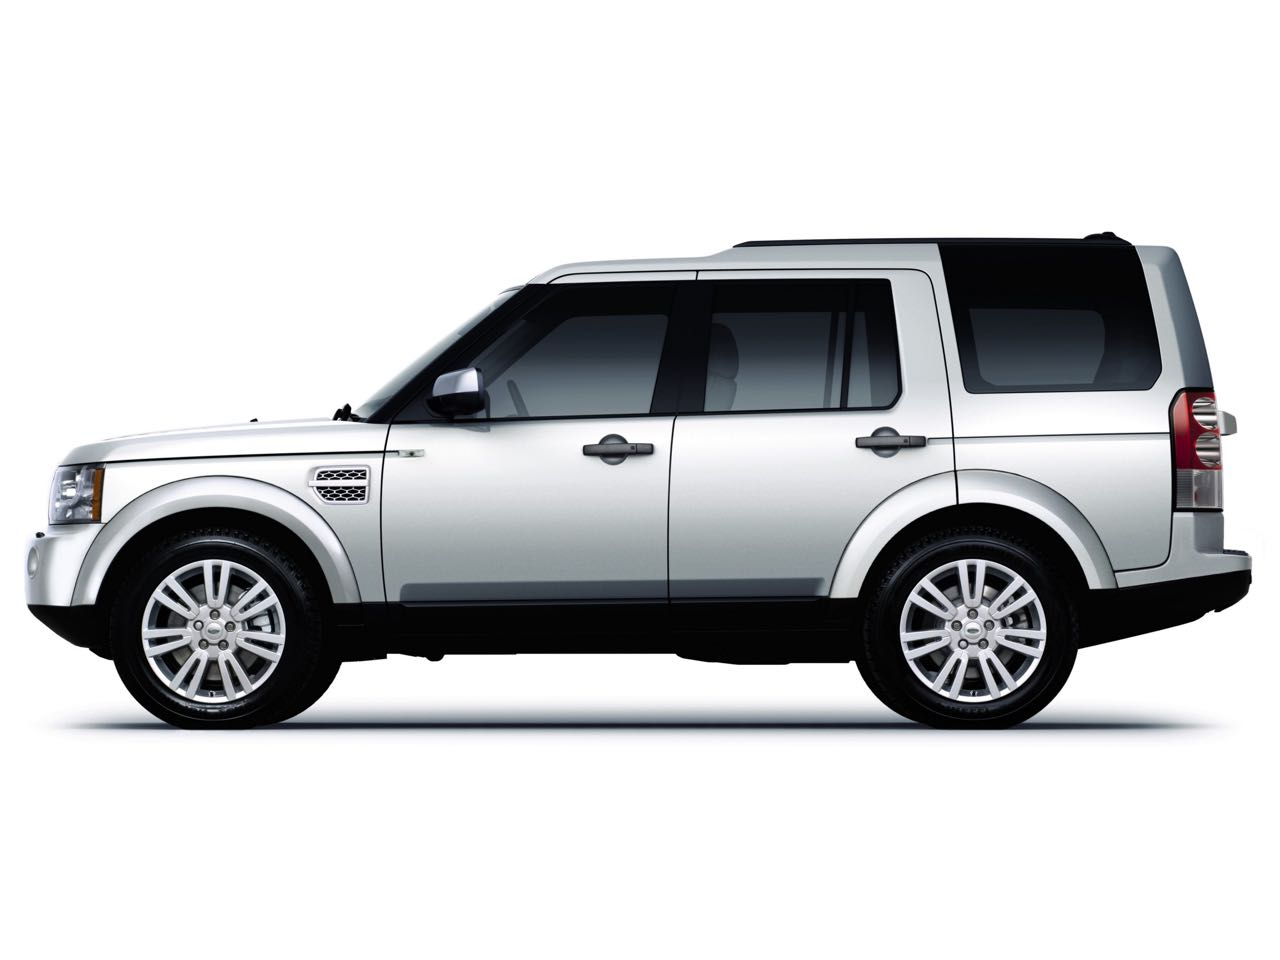 Land Rover Discovery 4 2009 lateral